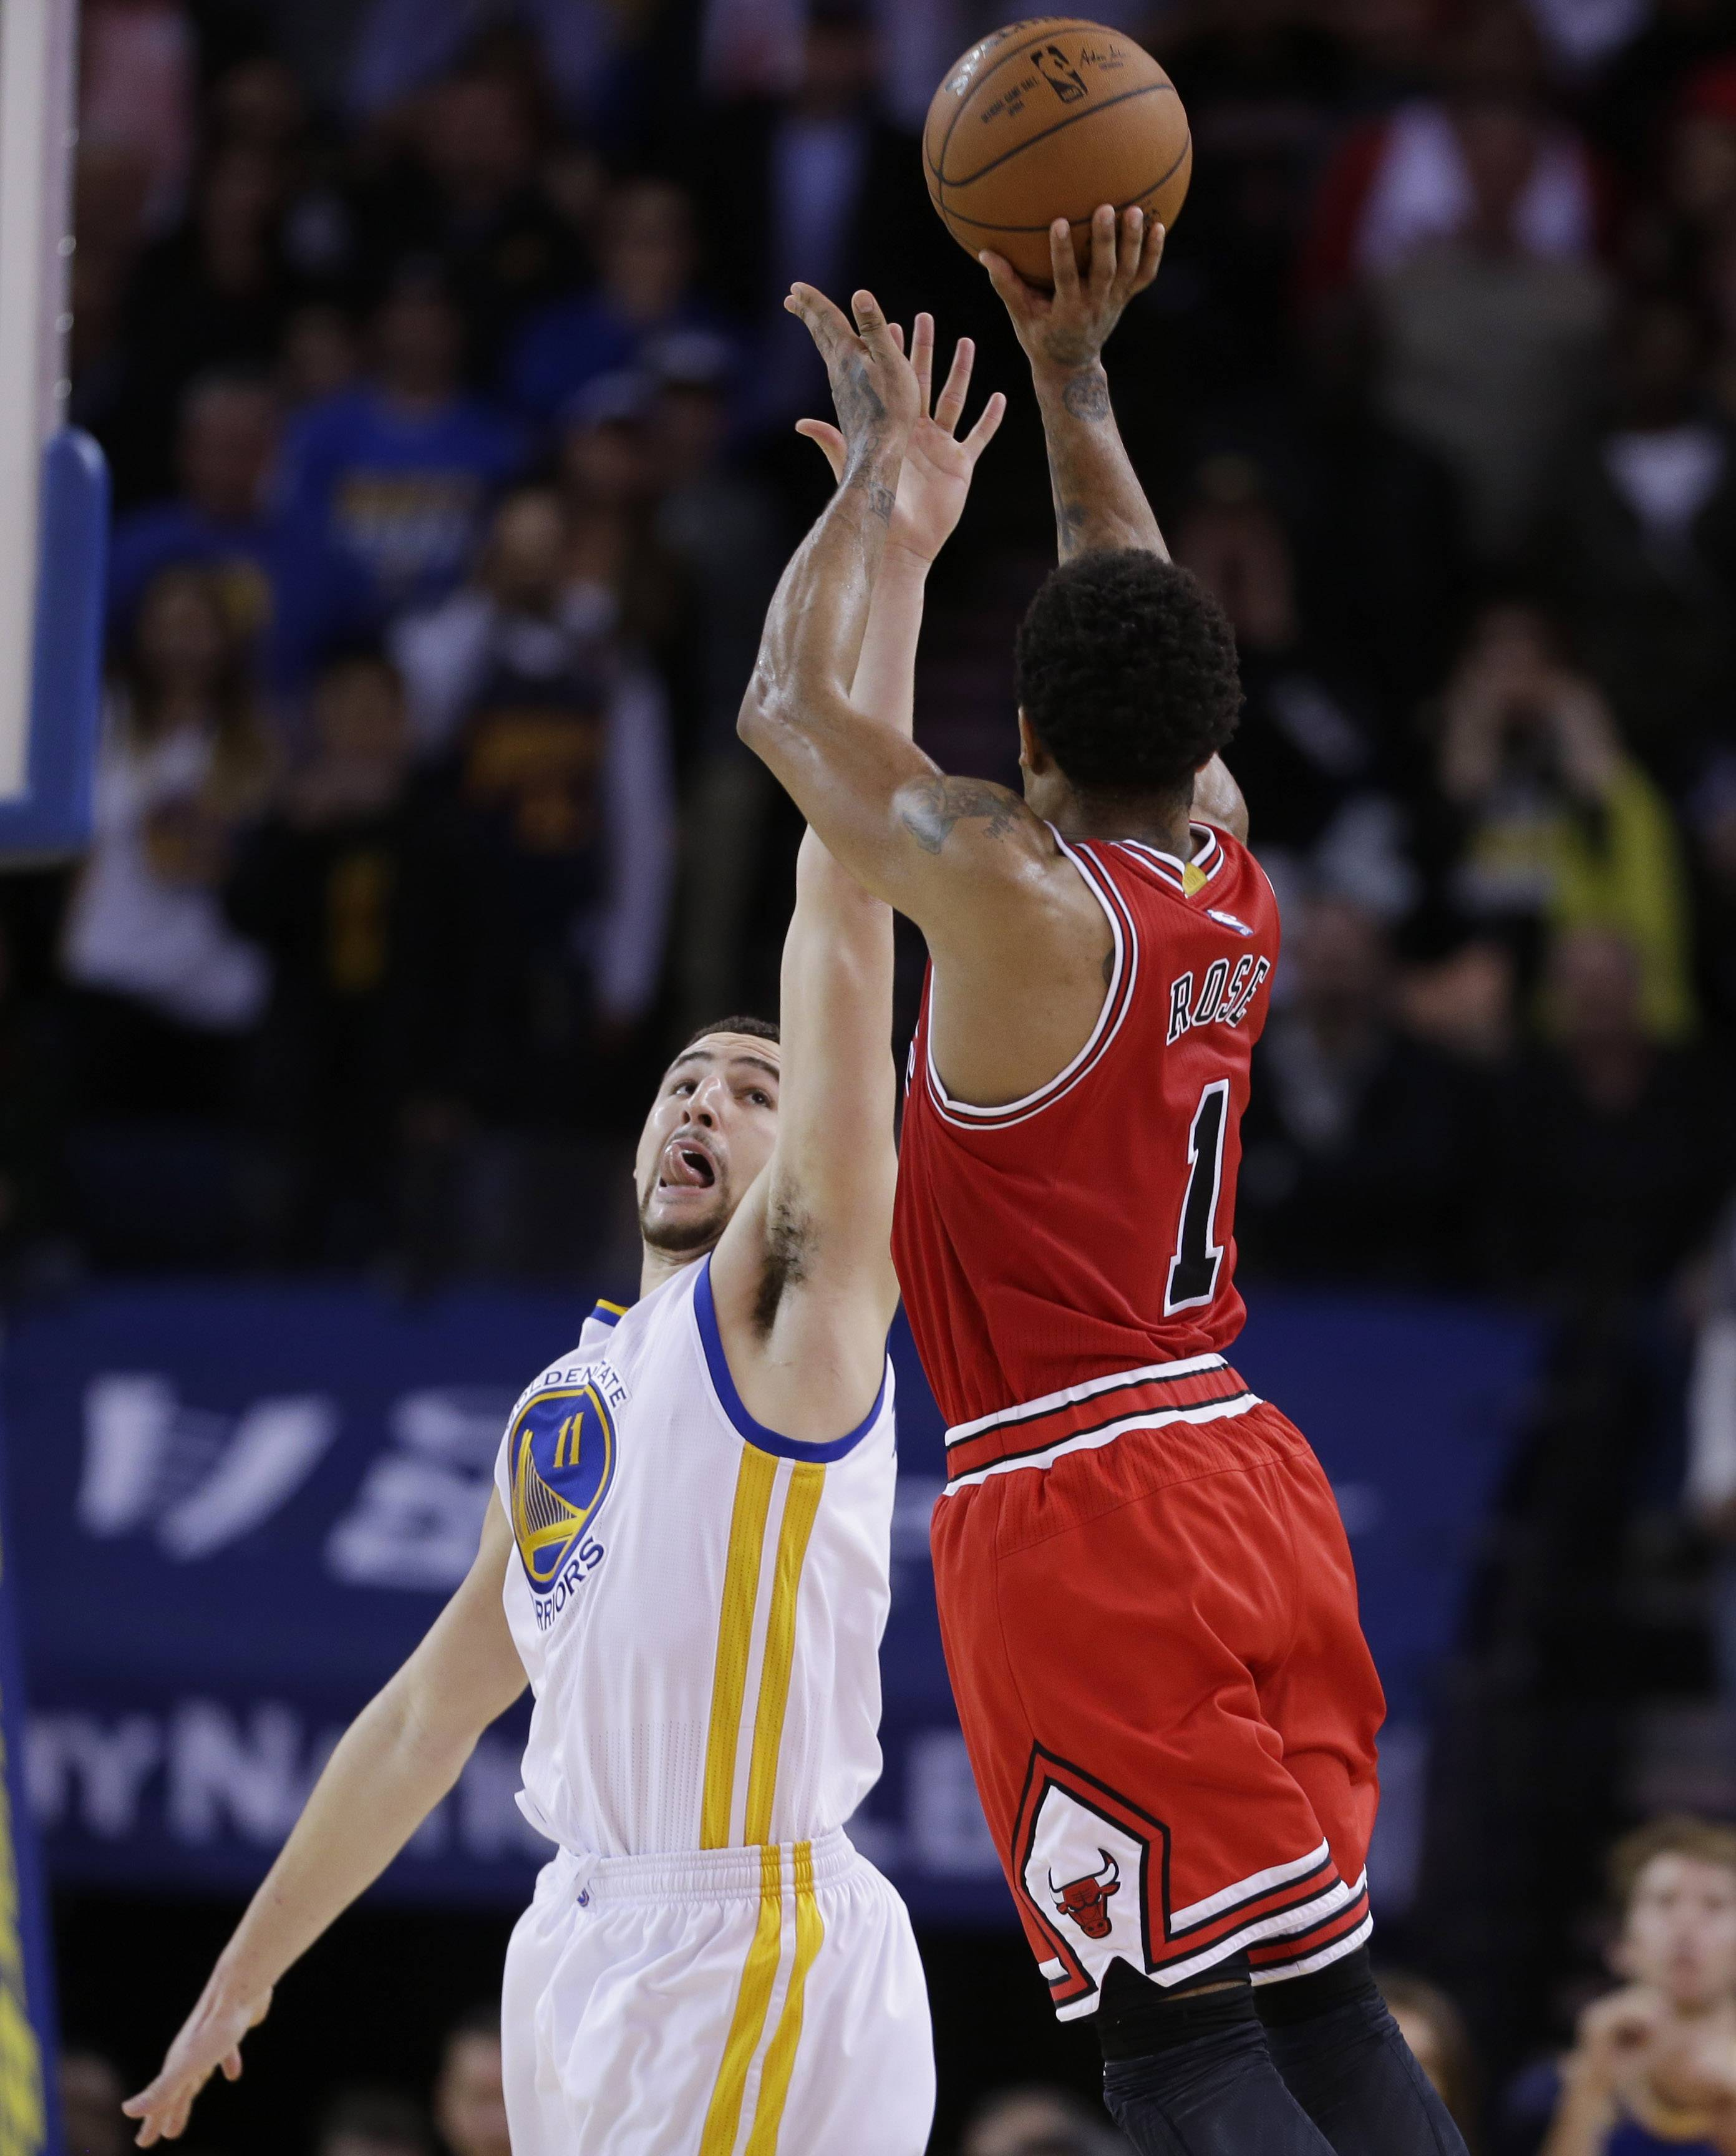 Chicago Bulls' Derrick Rose, right, hits the go-ahead shot over Golden State Warriors' Klay Thompson during overtime of an NBA basketball game Tuesday, Jan. 27, 2015, in Oakland, Calif. Chicago won 113-111. (AP Photo/Marcio Jose Sanchez)